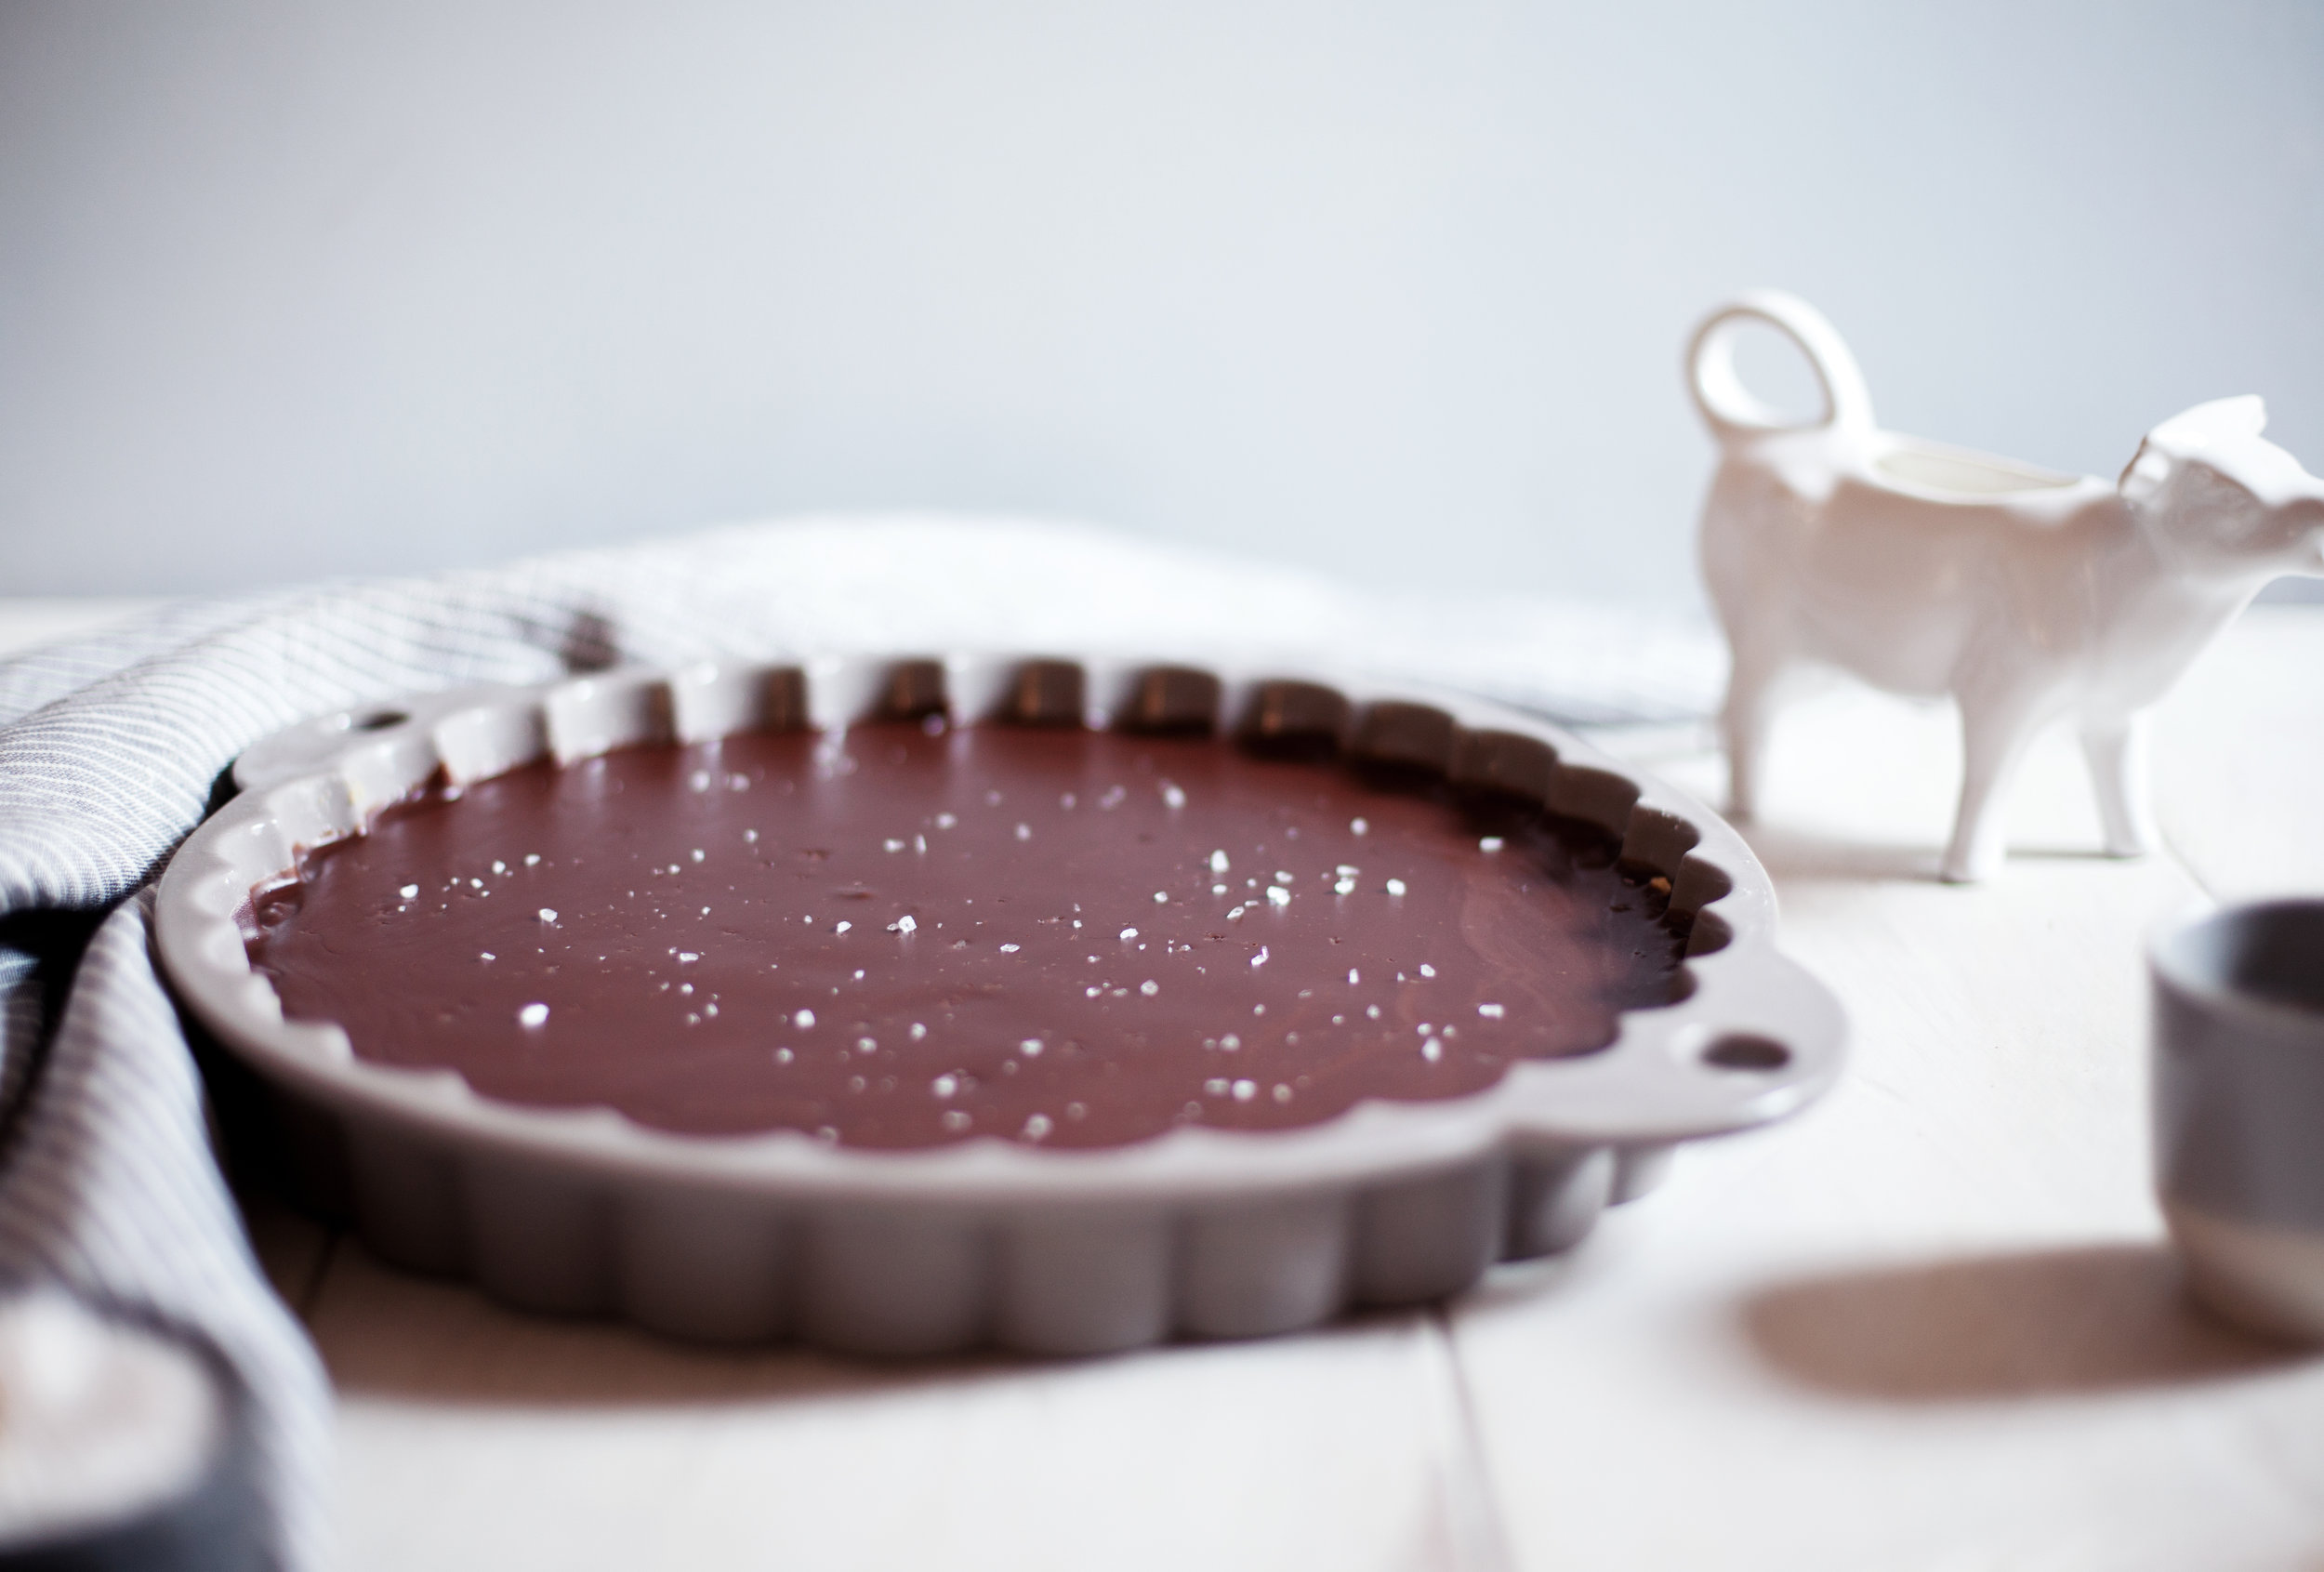 salted chocolate tart viiii.jpg